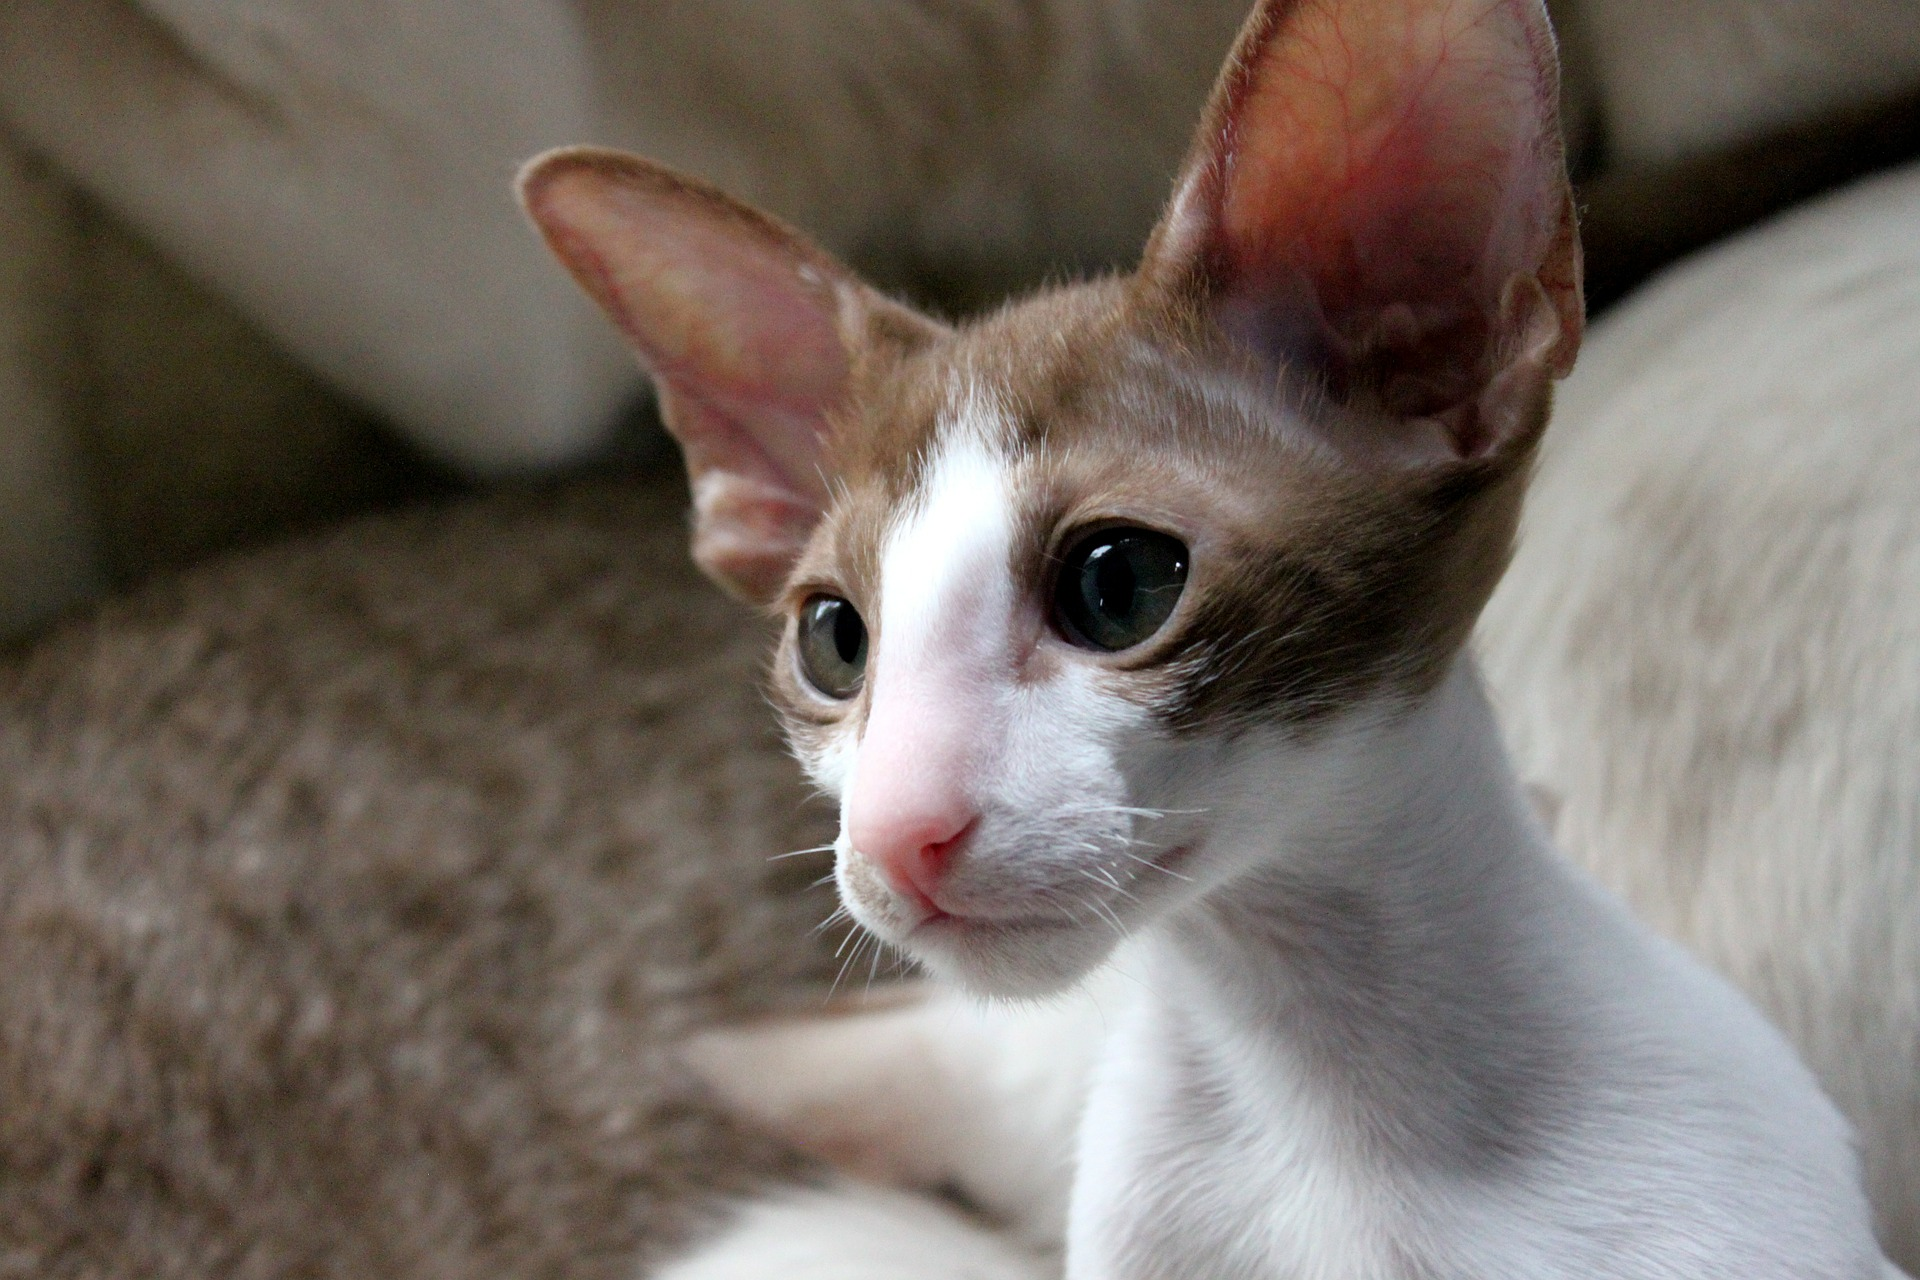 Meet the Lovely Oriental Shorthair a.k.a. Ornament